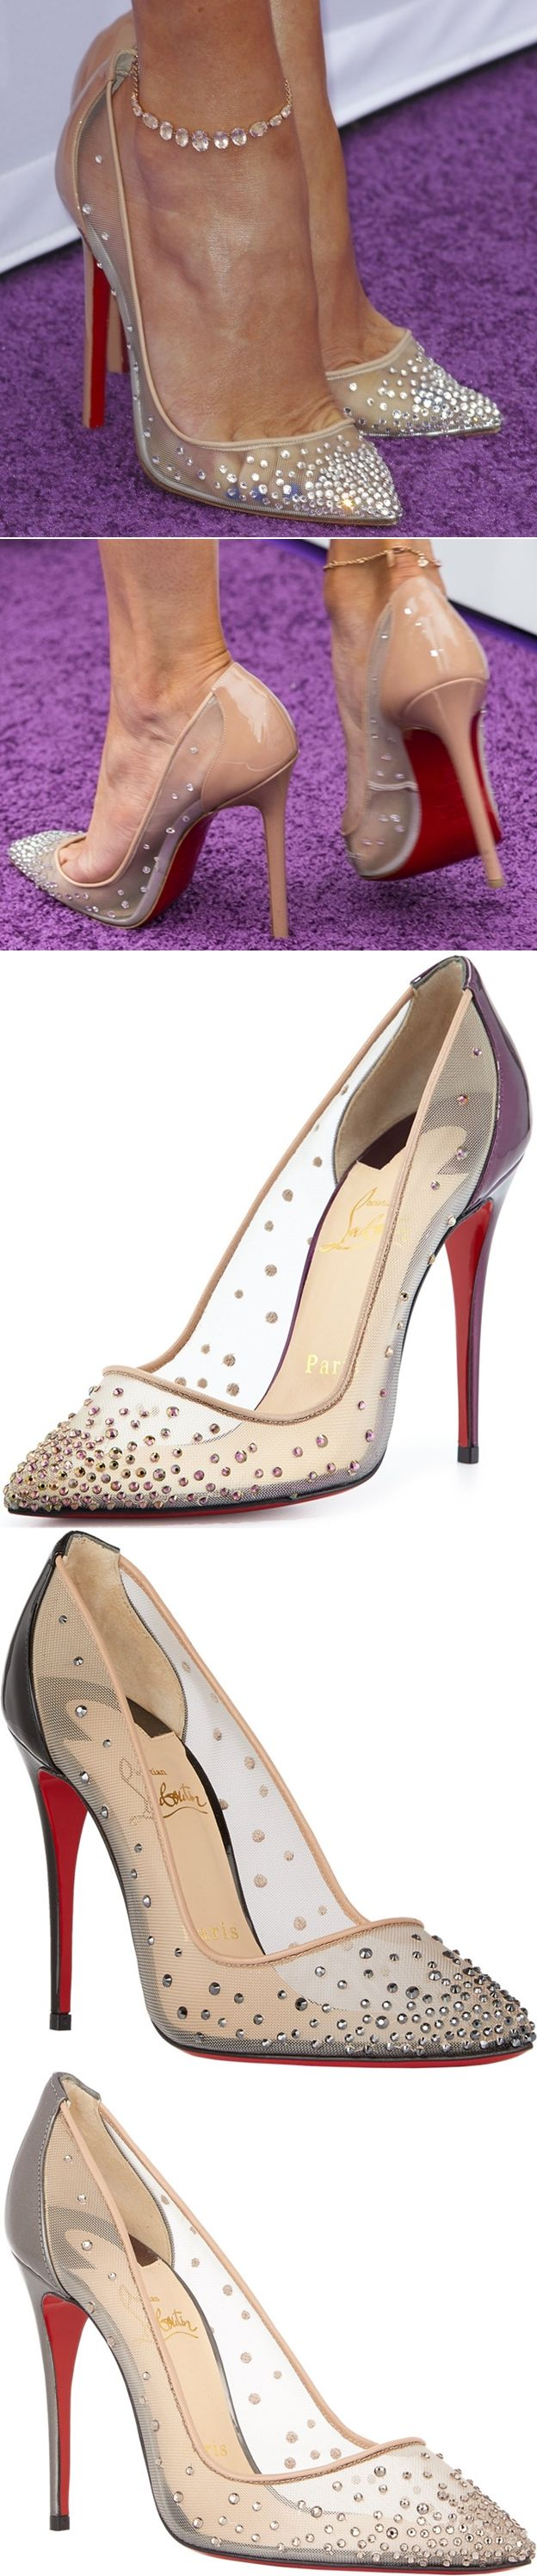 Jennifer Lopez wearing a gorgeous pair of crystal-embellished pumps from Christian Louboutin